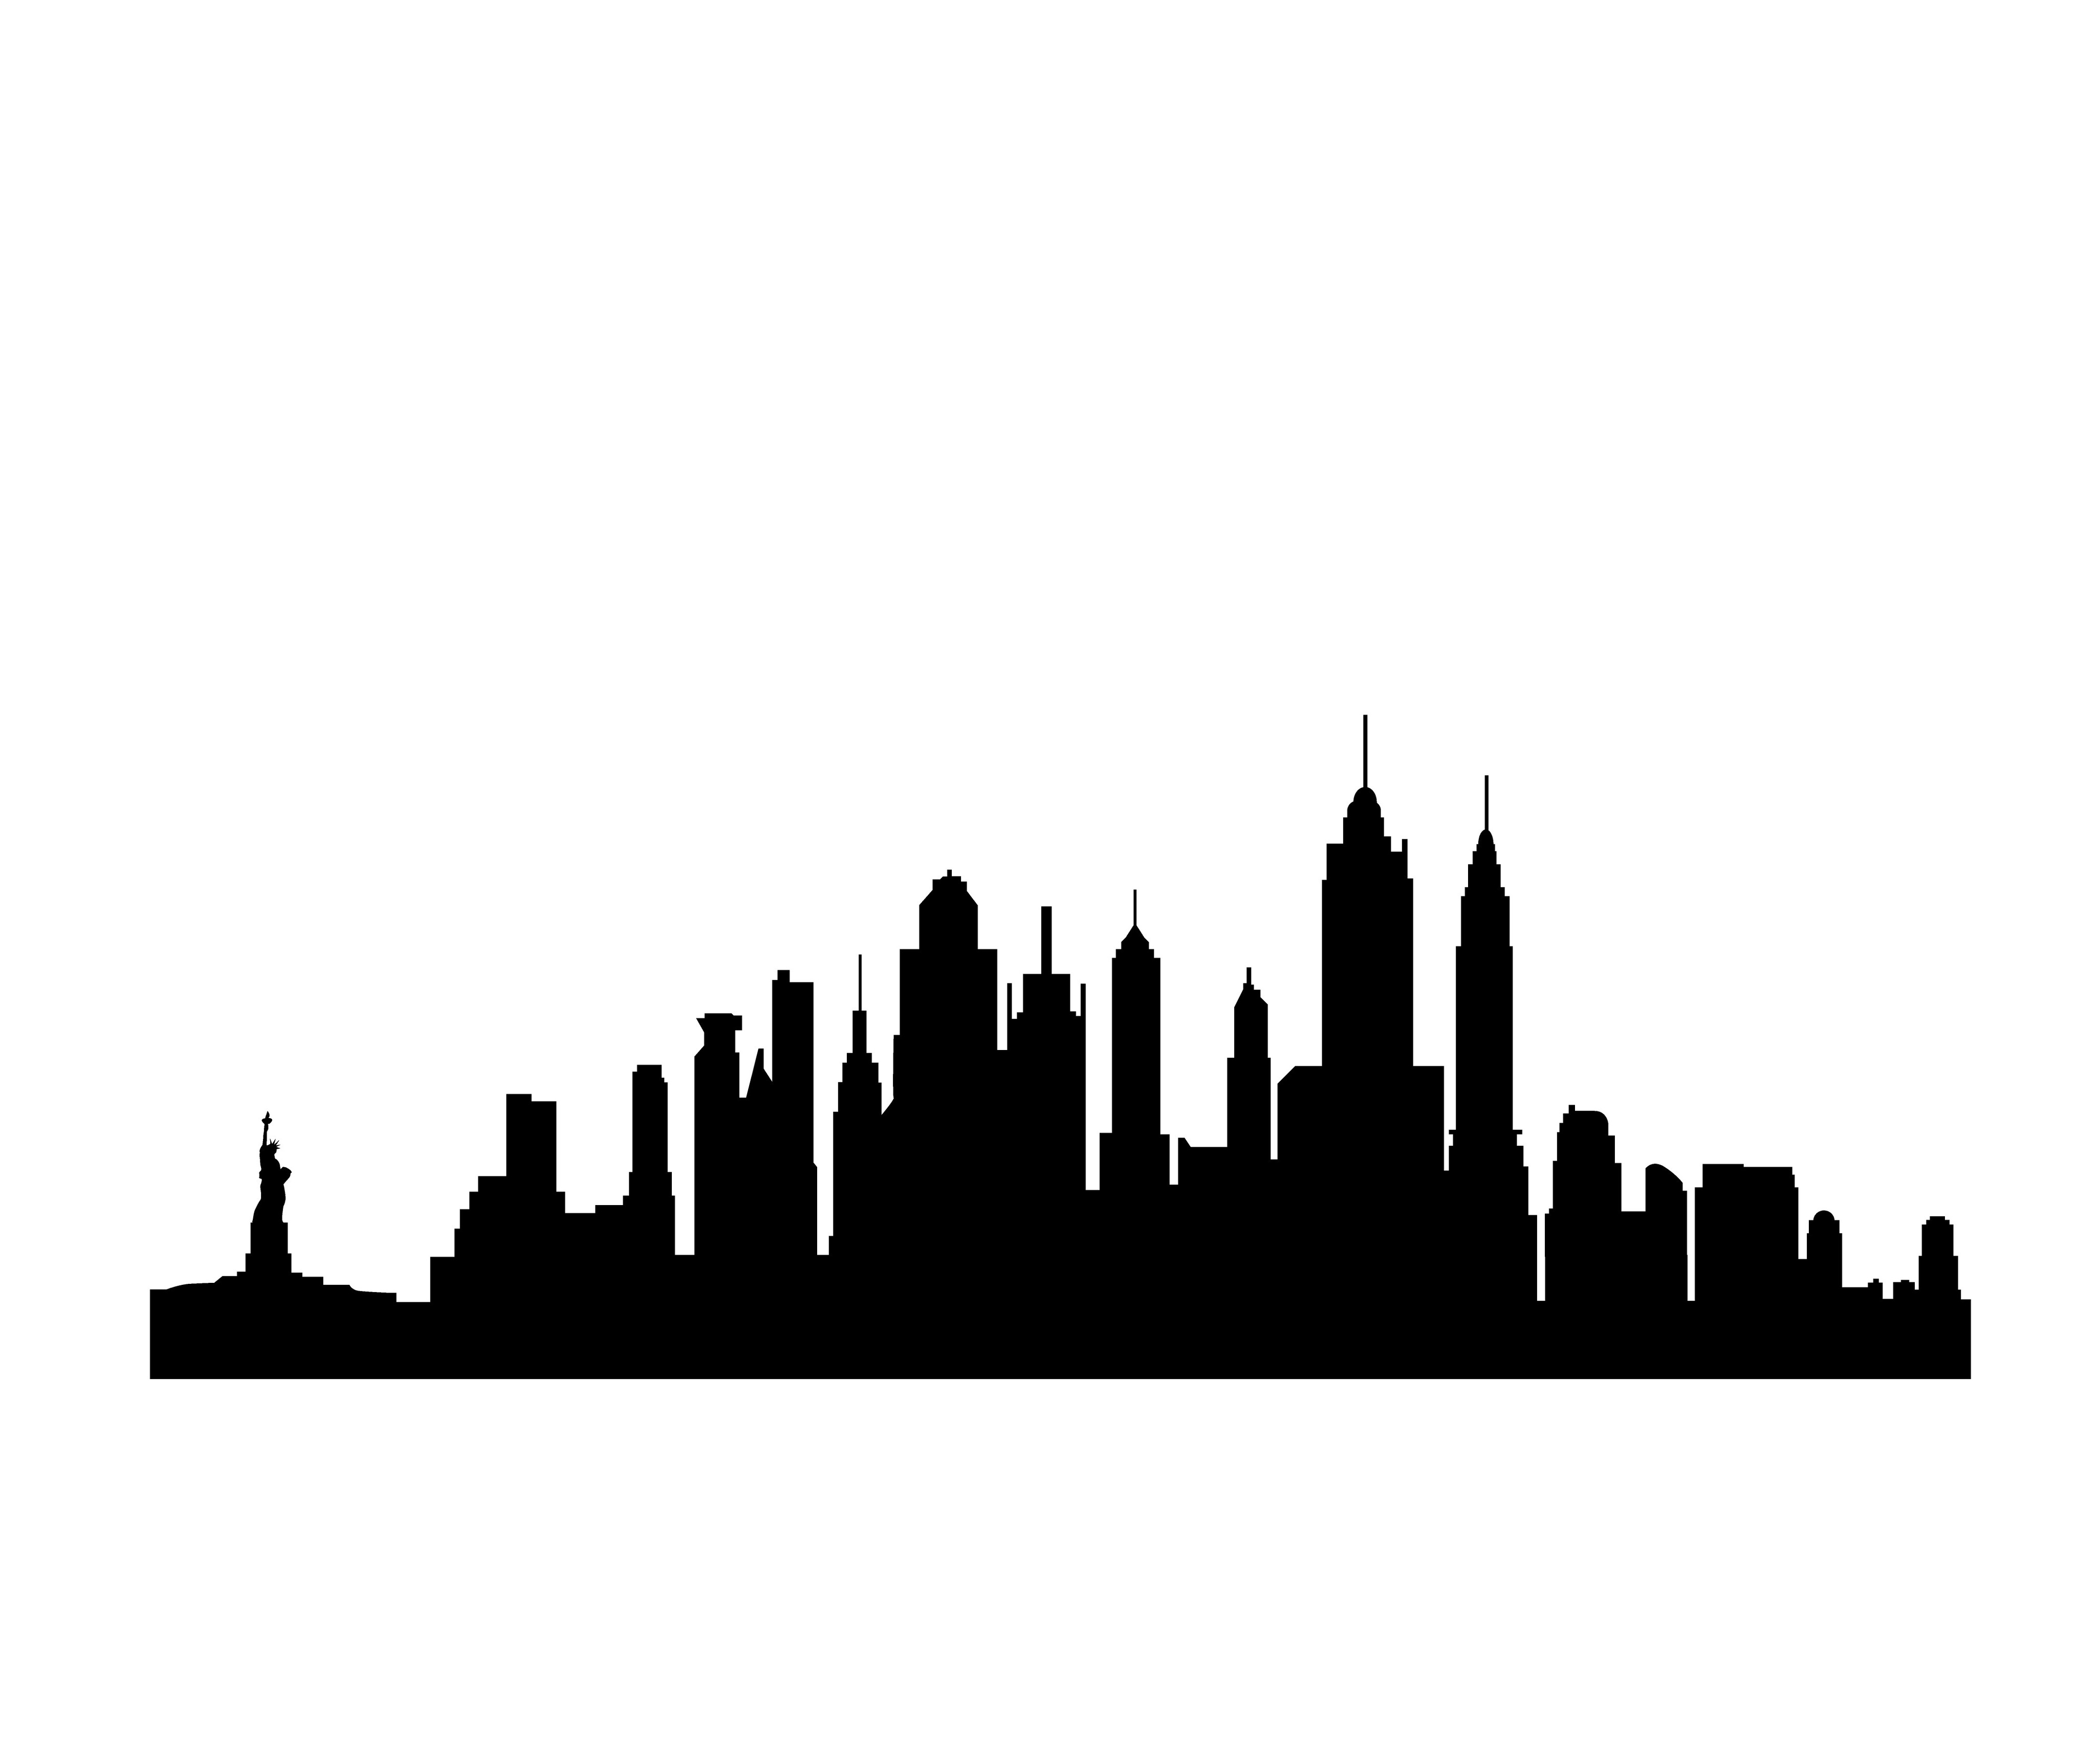 City skyline clip art free clipart to use resource.